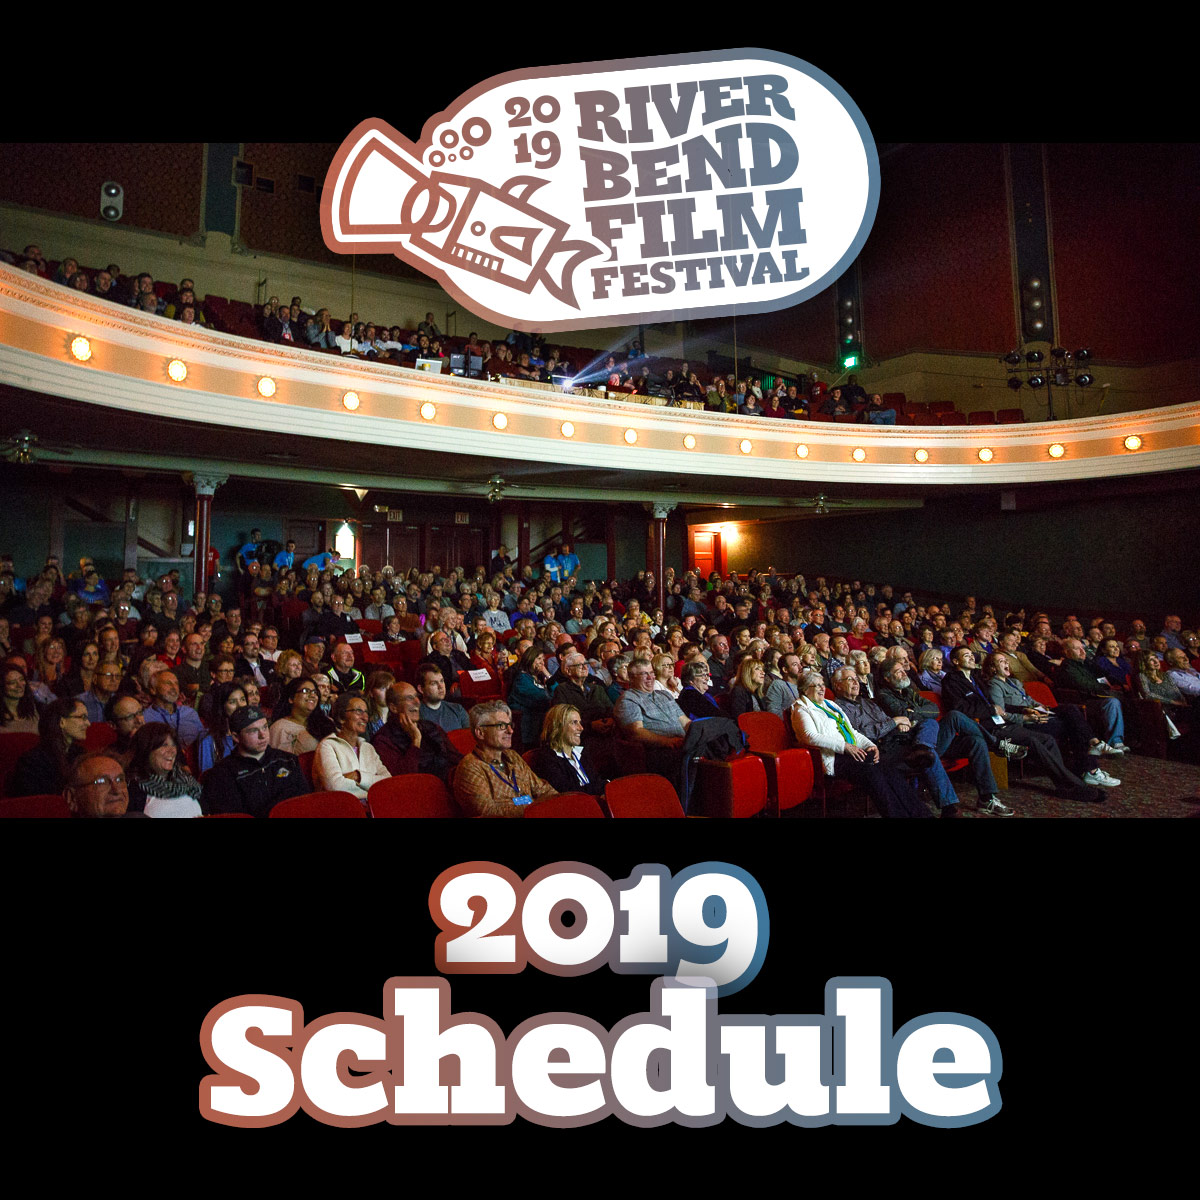 2019 River Bend Schedule